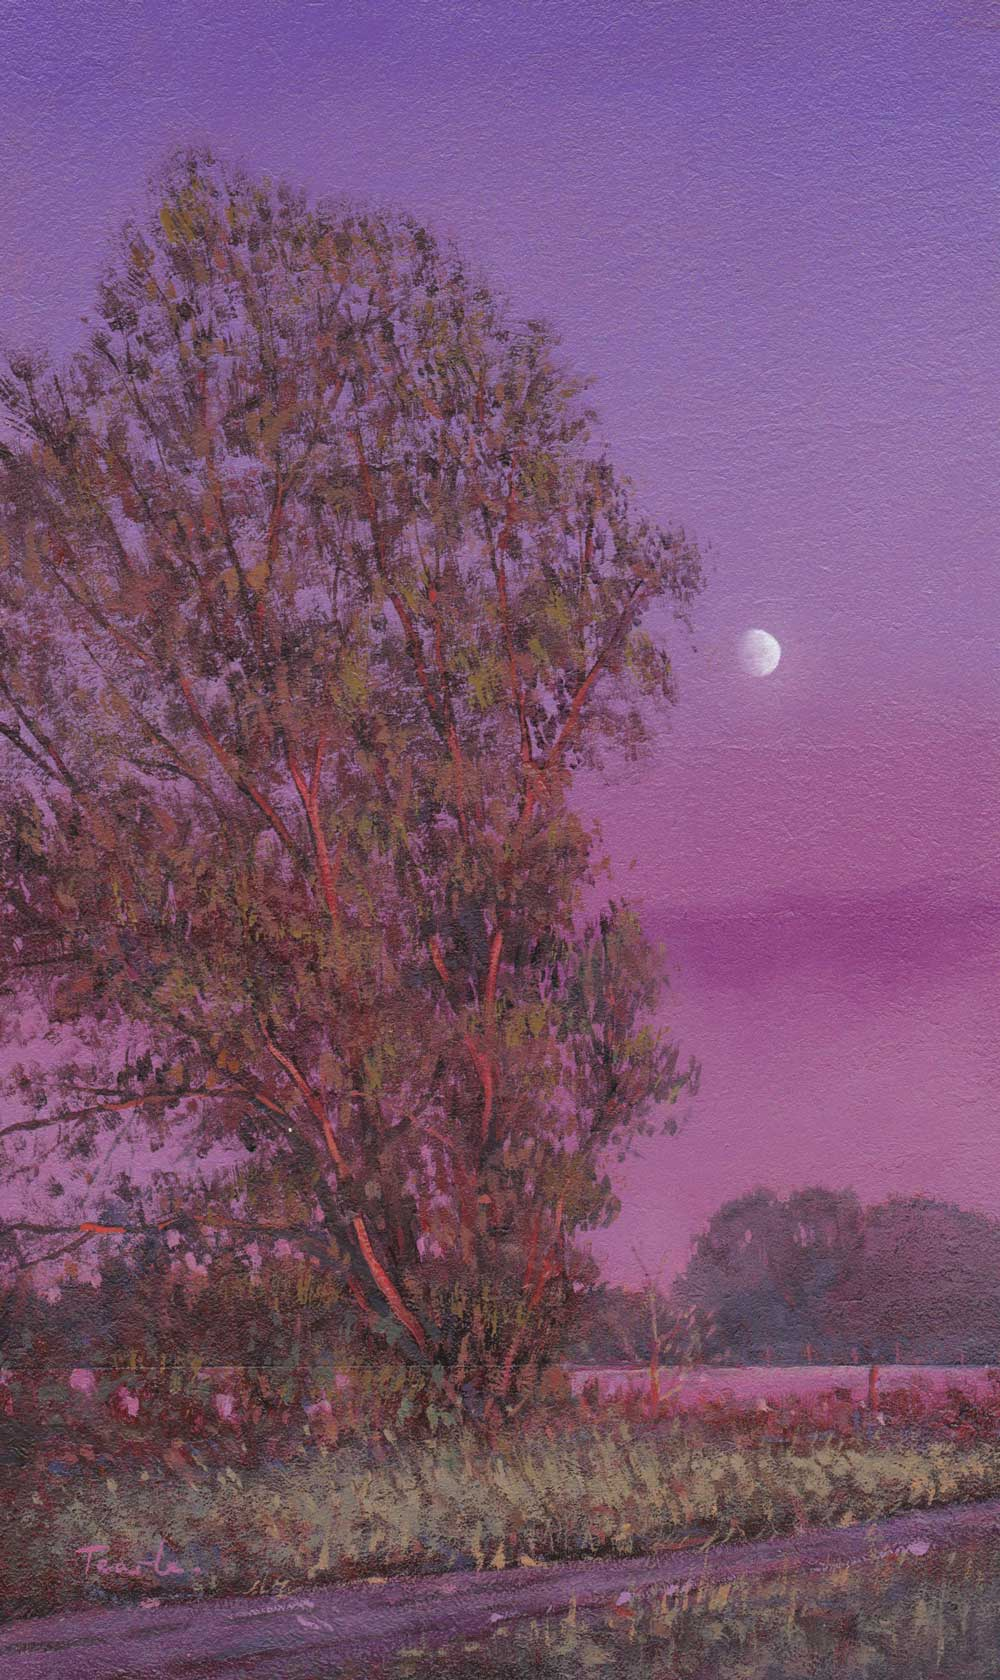 Willow Tree at Dusk - Nick Tearle, Fenland Artist